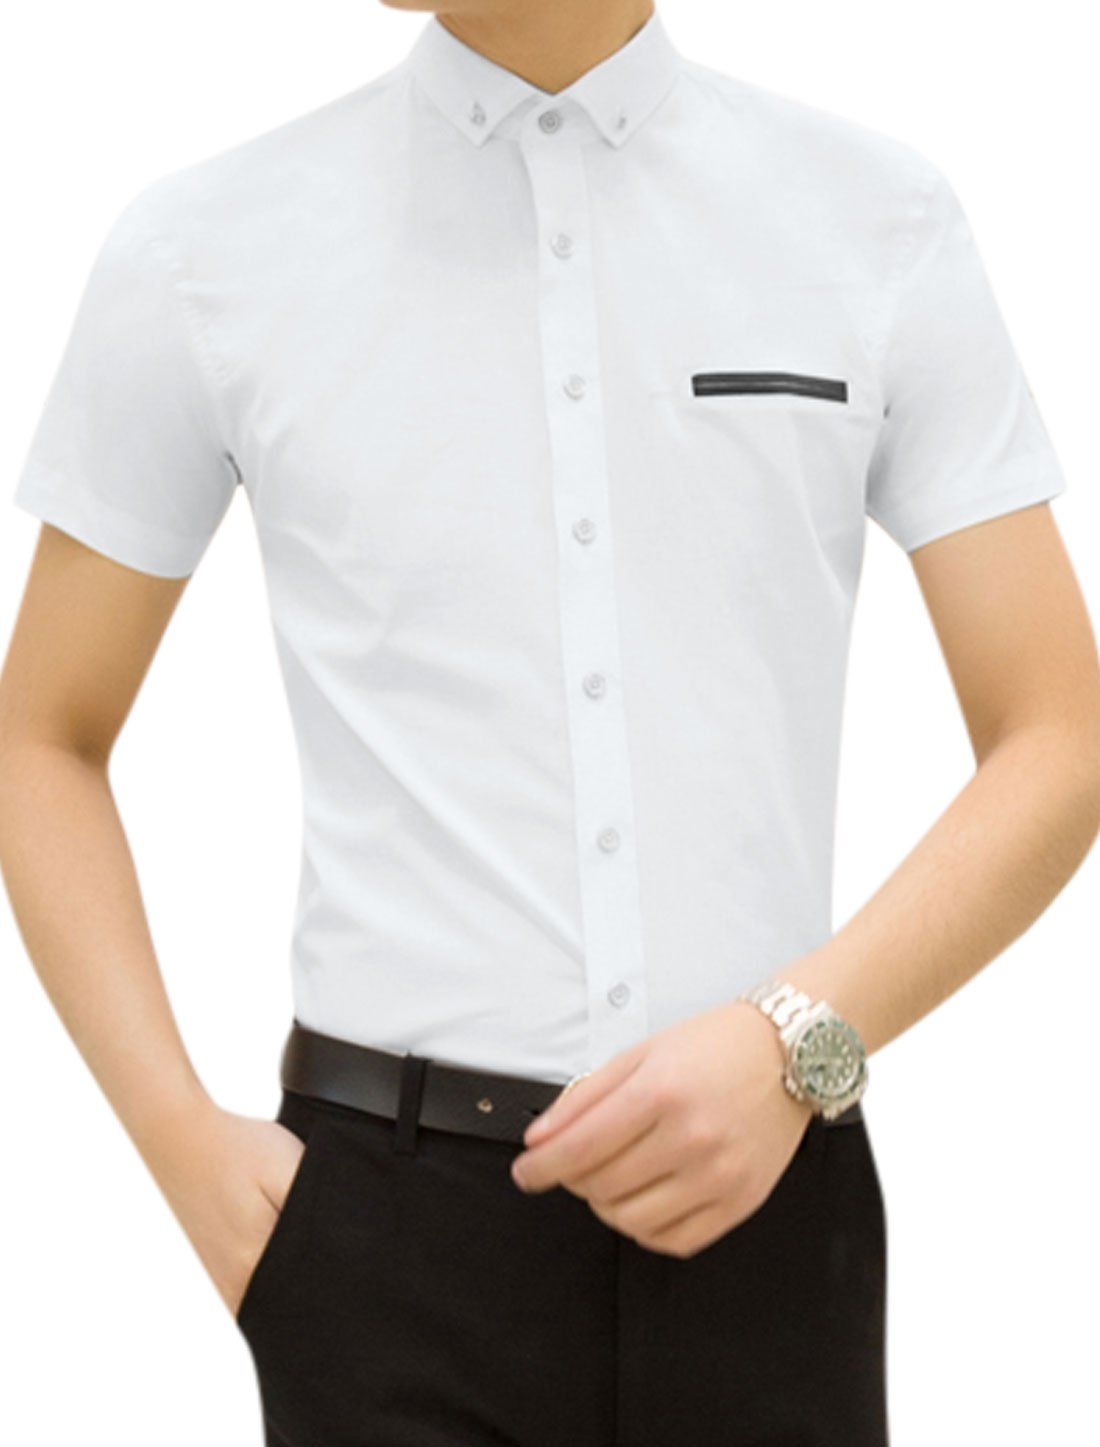 Men Short Sleeves Point Collar Mock Welt Pocket Casual Top Shirt White M